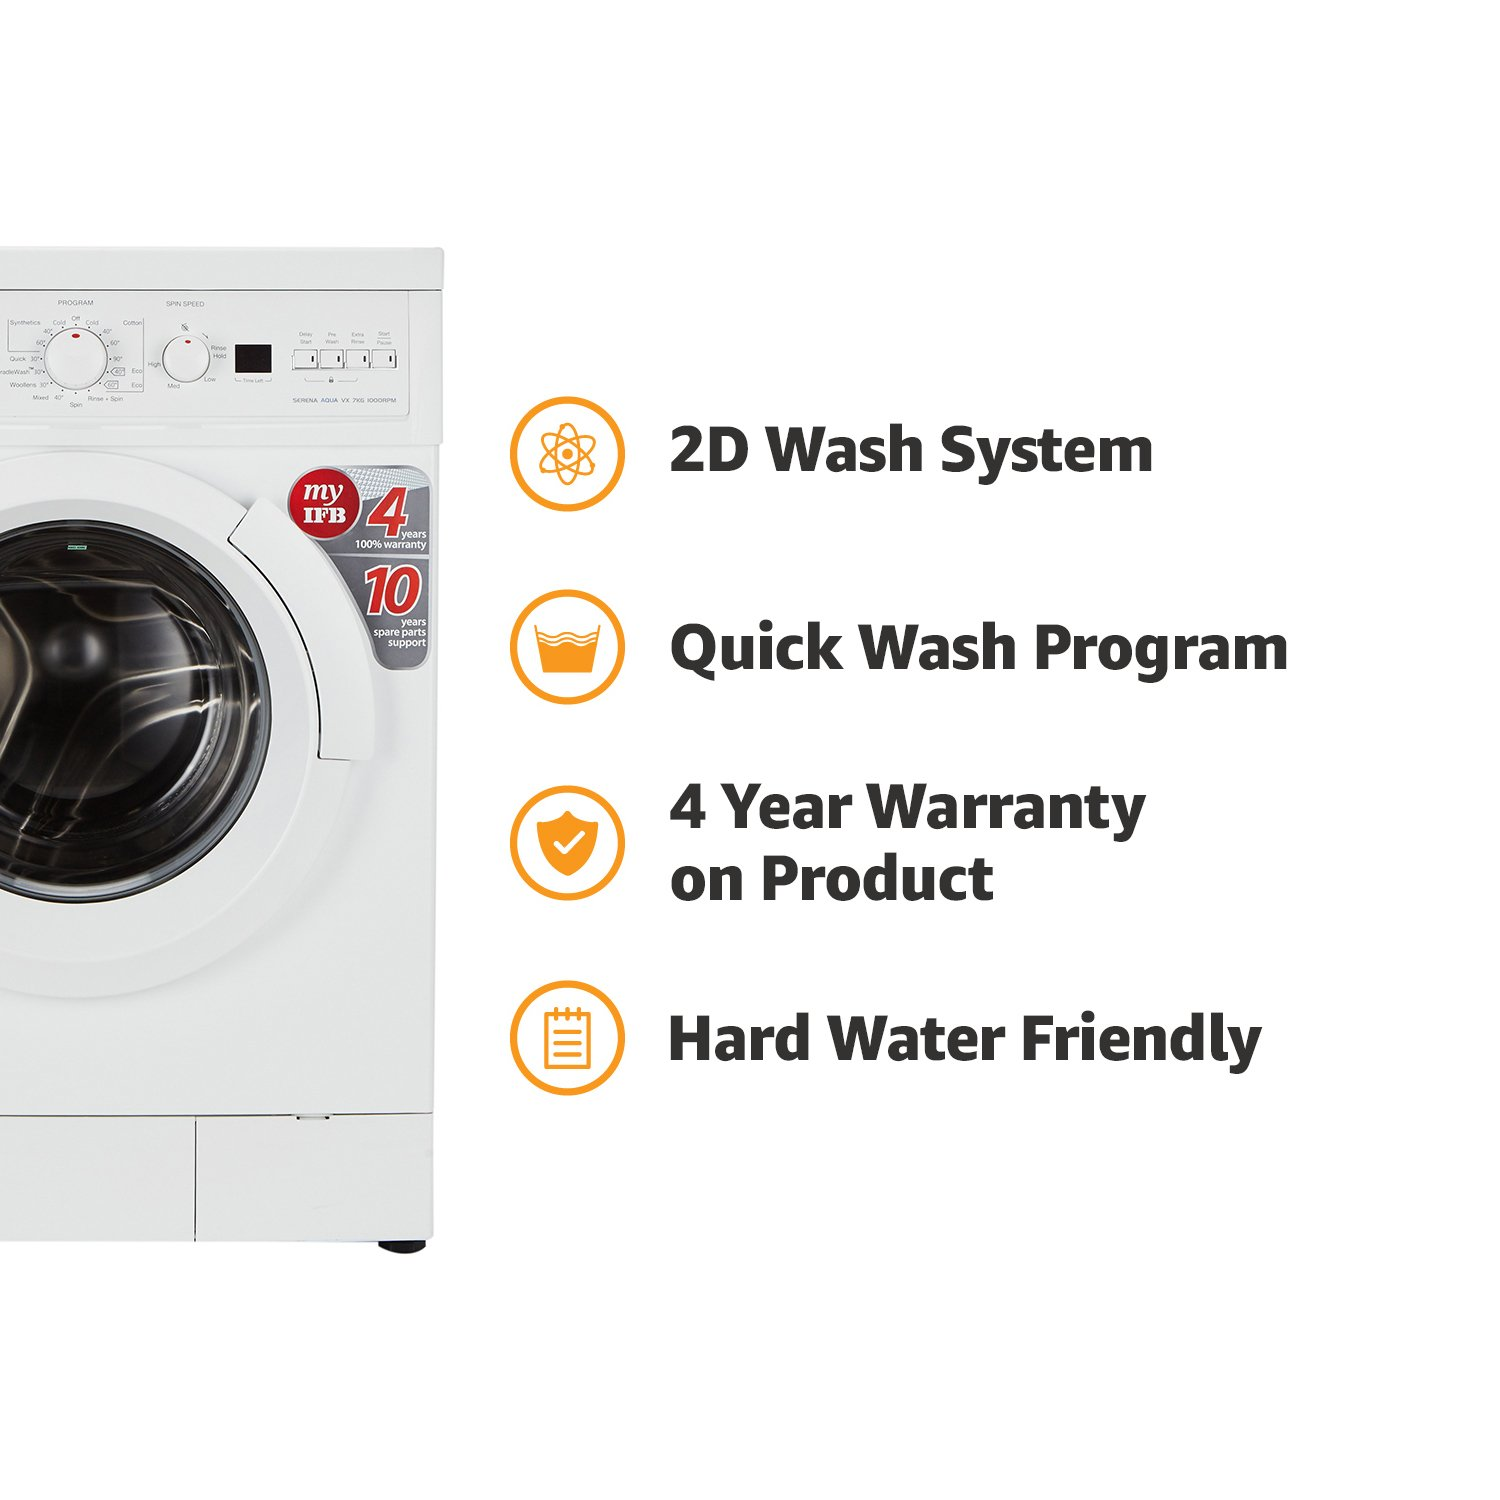 Ifb 7 Kg Fully Automatic Front Loading Washing Machine Serena Aqua Wiring Diagram Of Vx Ldt White Home Kitchen